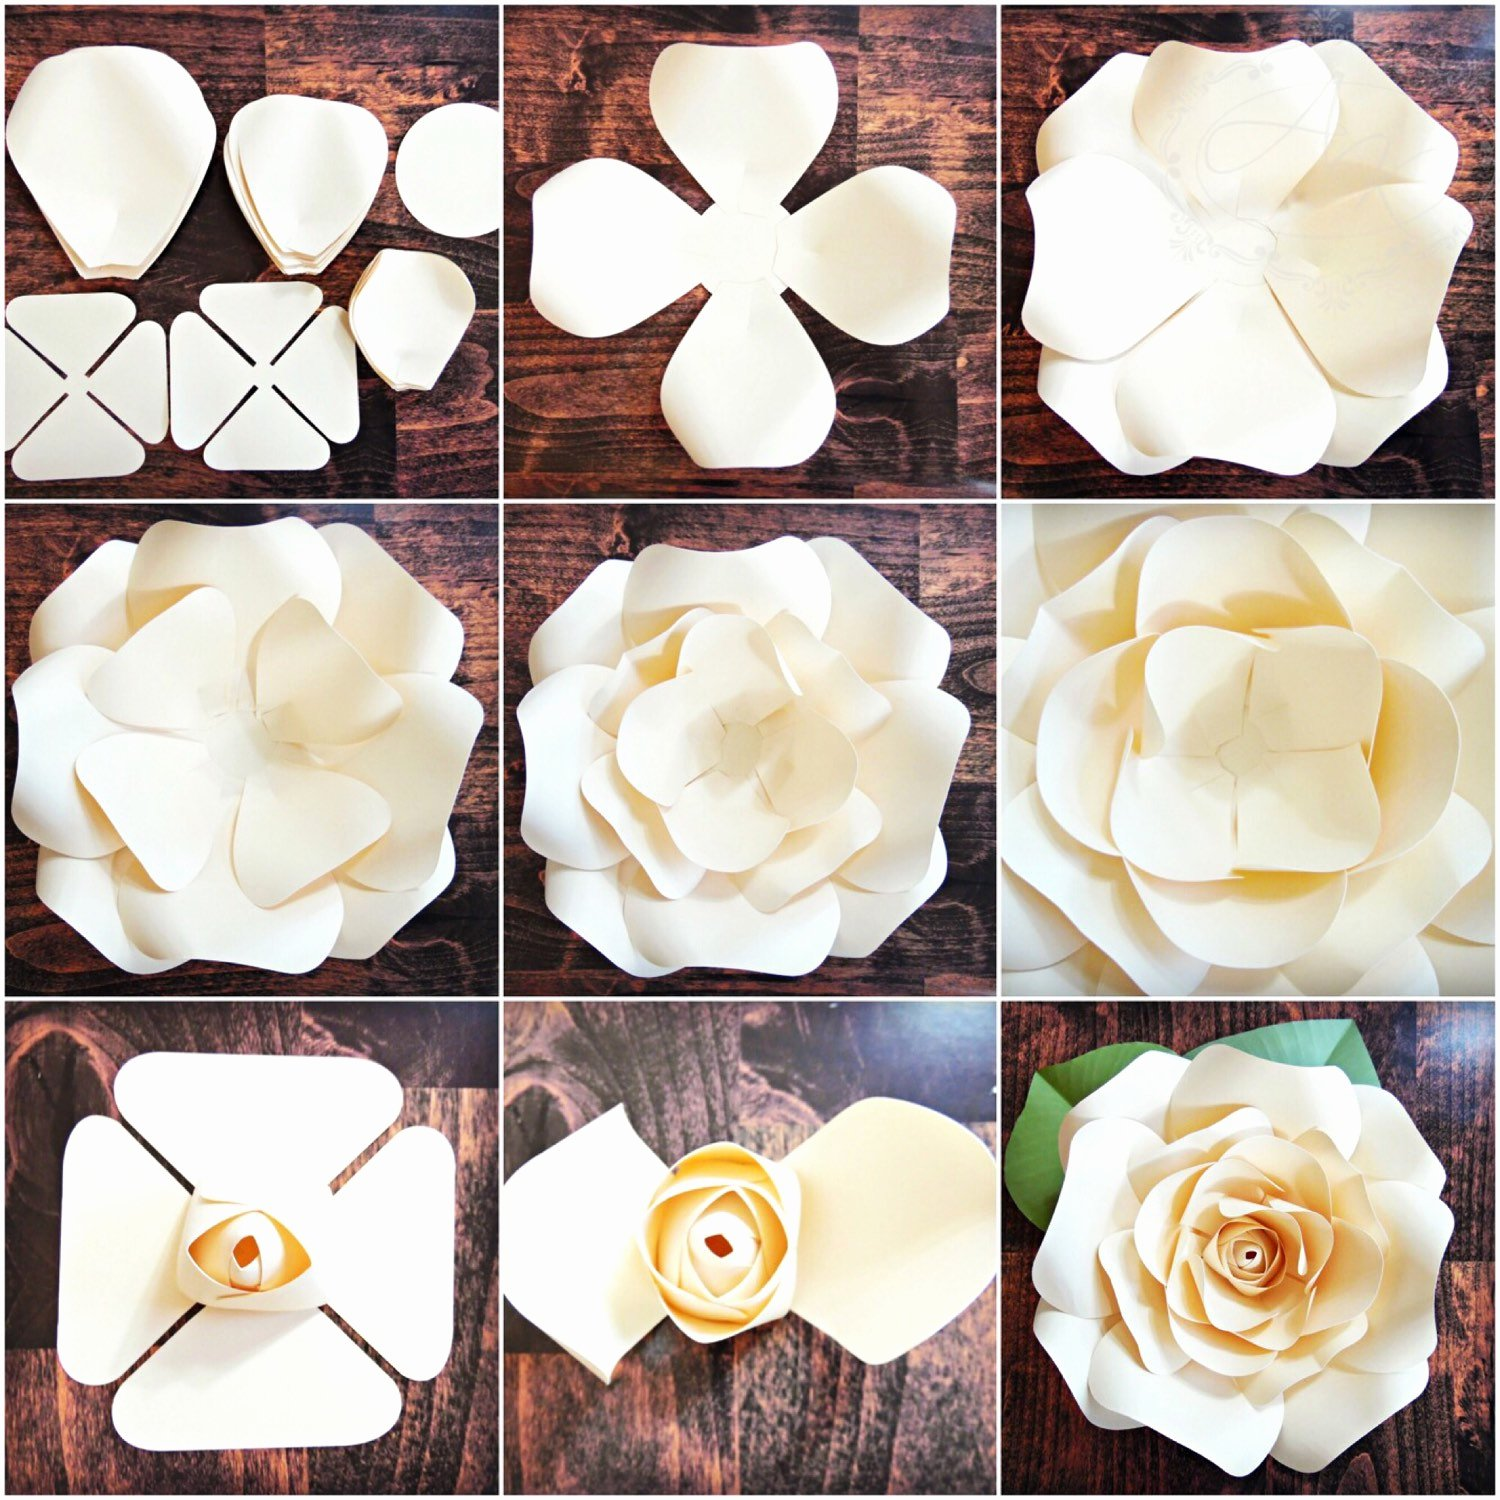 Giant Rose Template Inspirational Diy Giant Rose Templates Paper Rose Patterns & Tutorials